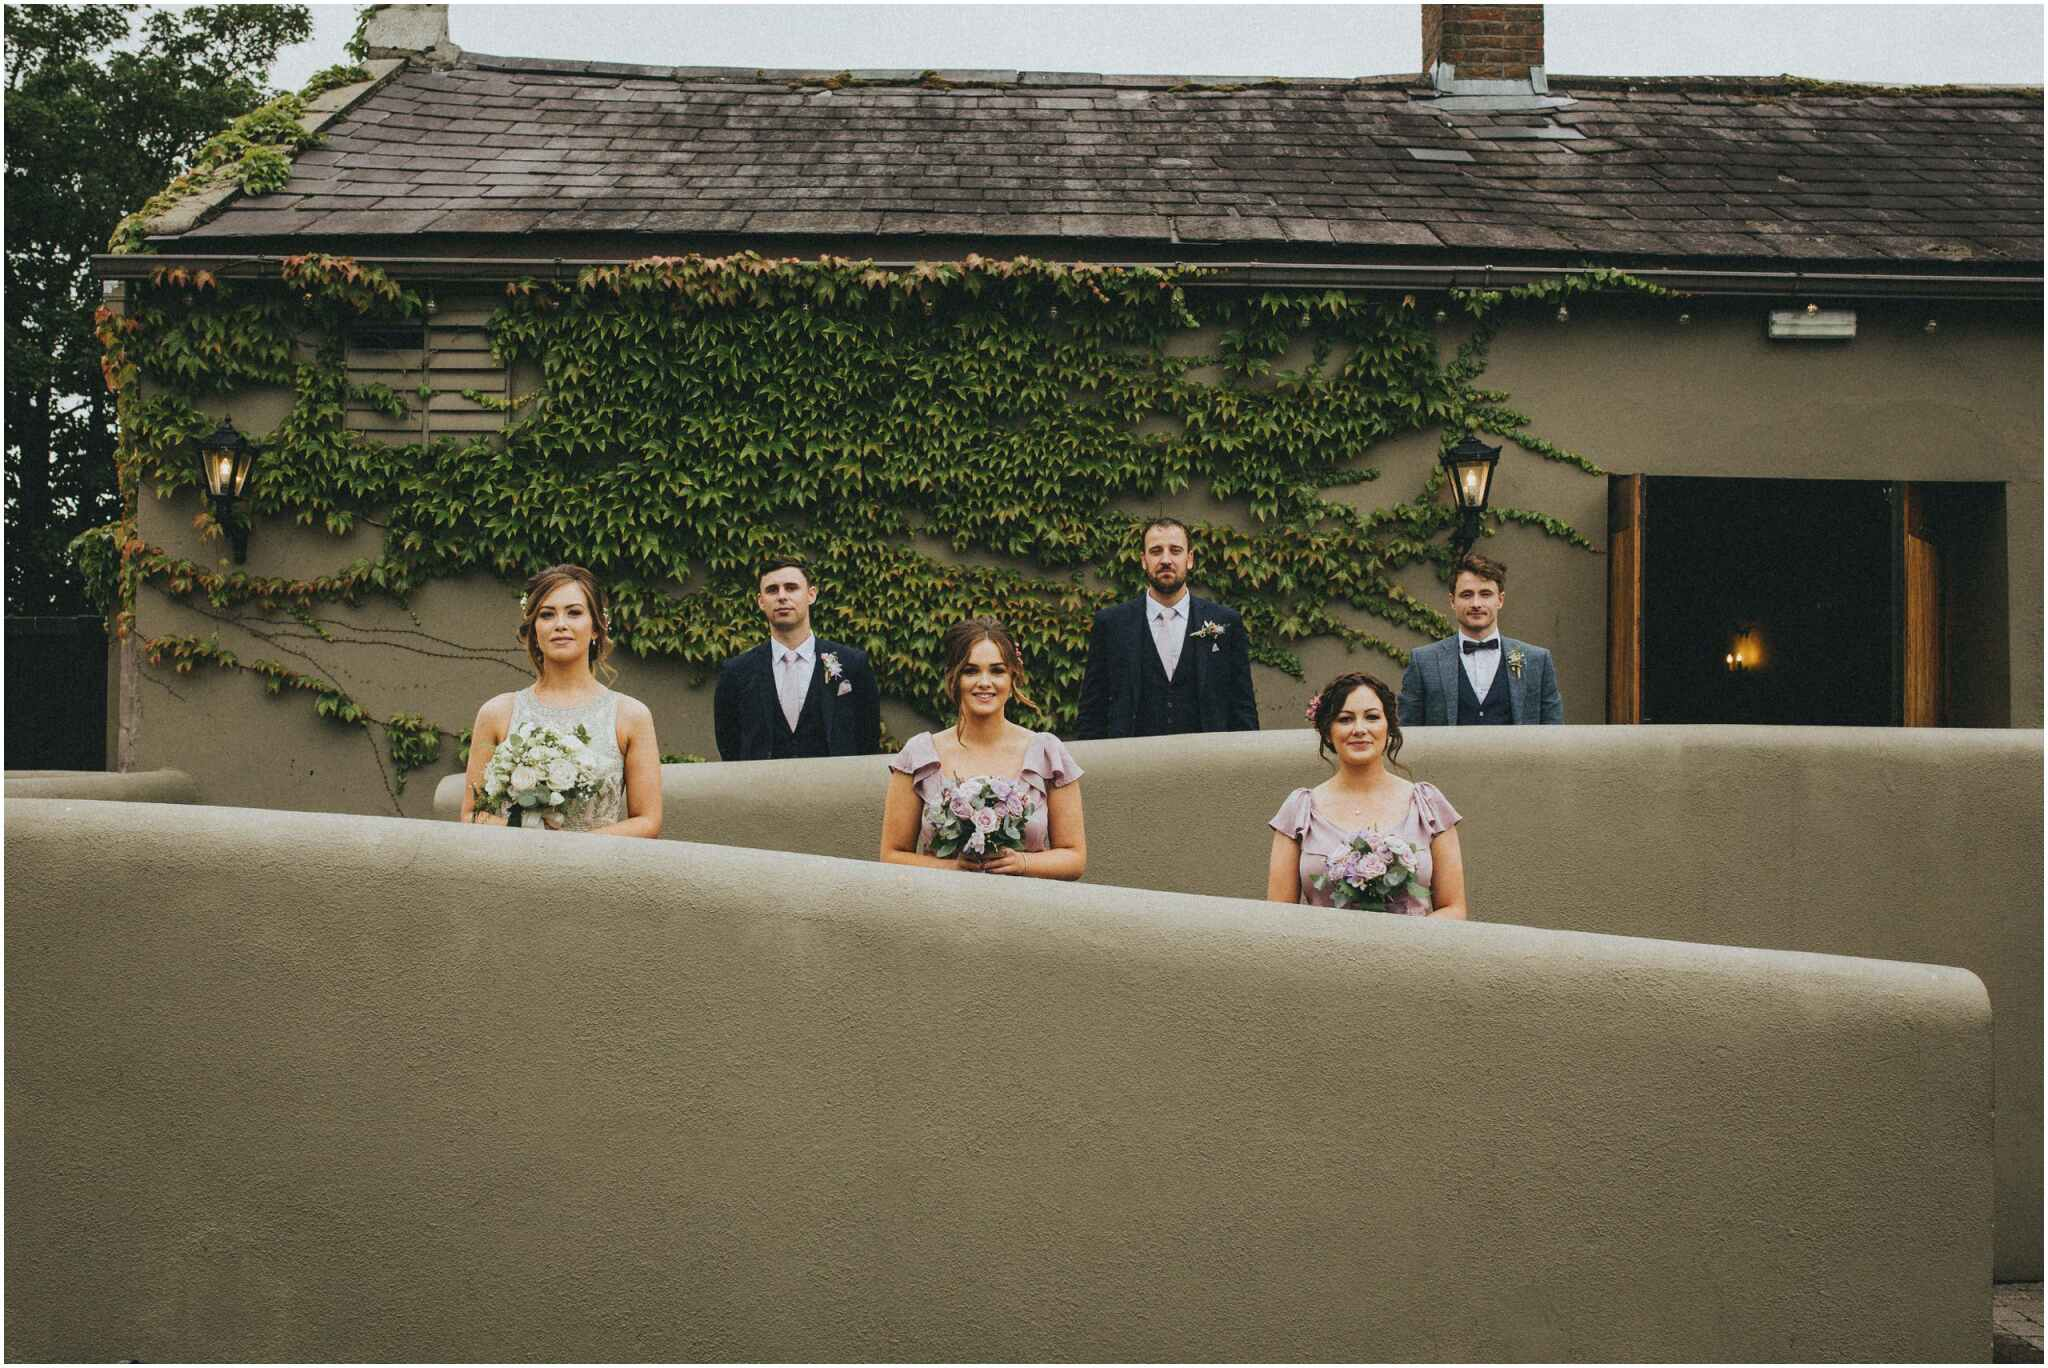 Sharon + Rob – Barberstown Castle 58